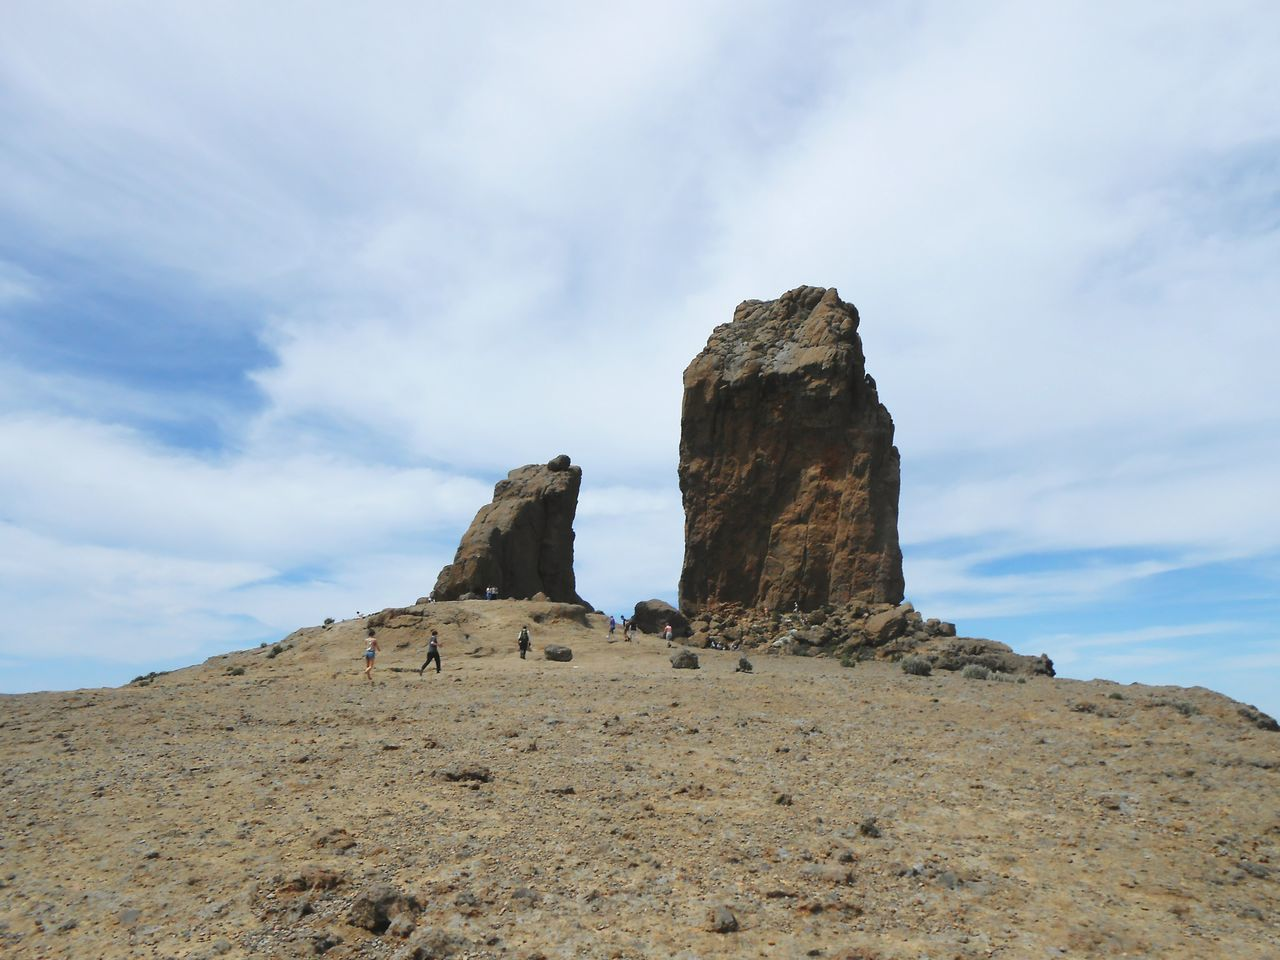 ... Roque Nublo ... Landscape Outdoors Cloud - Sky Mountains Volcanic Landscape Gran Canaria Canary Islands Peak Natural Monument Rock Rocks Standing Stones Peaks Nature Spectacular Vista Travel Tourist Trap Hiking Holidays Vacations Walking Mount Monuments